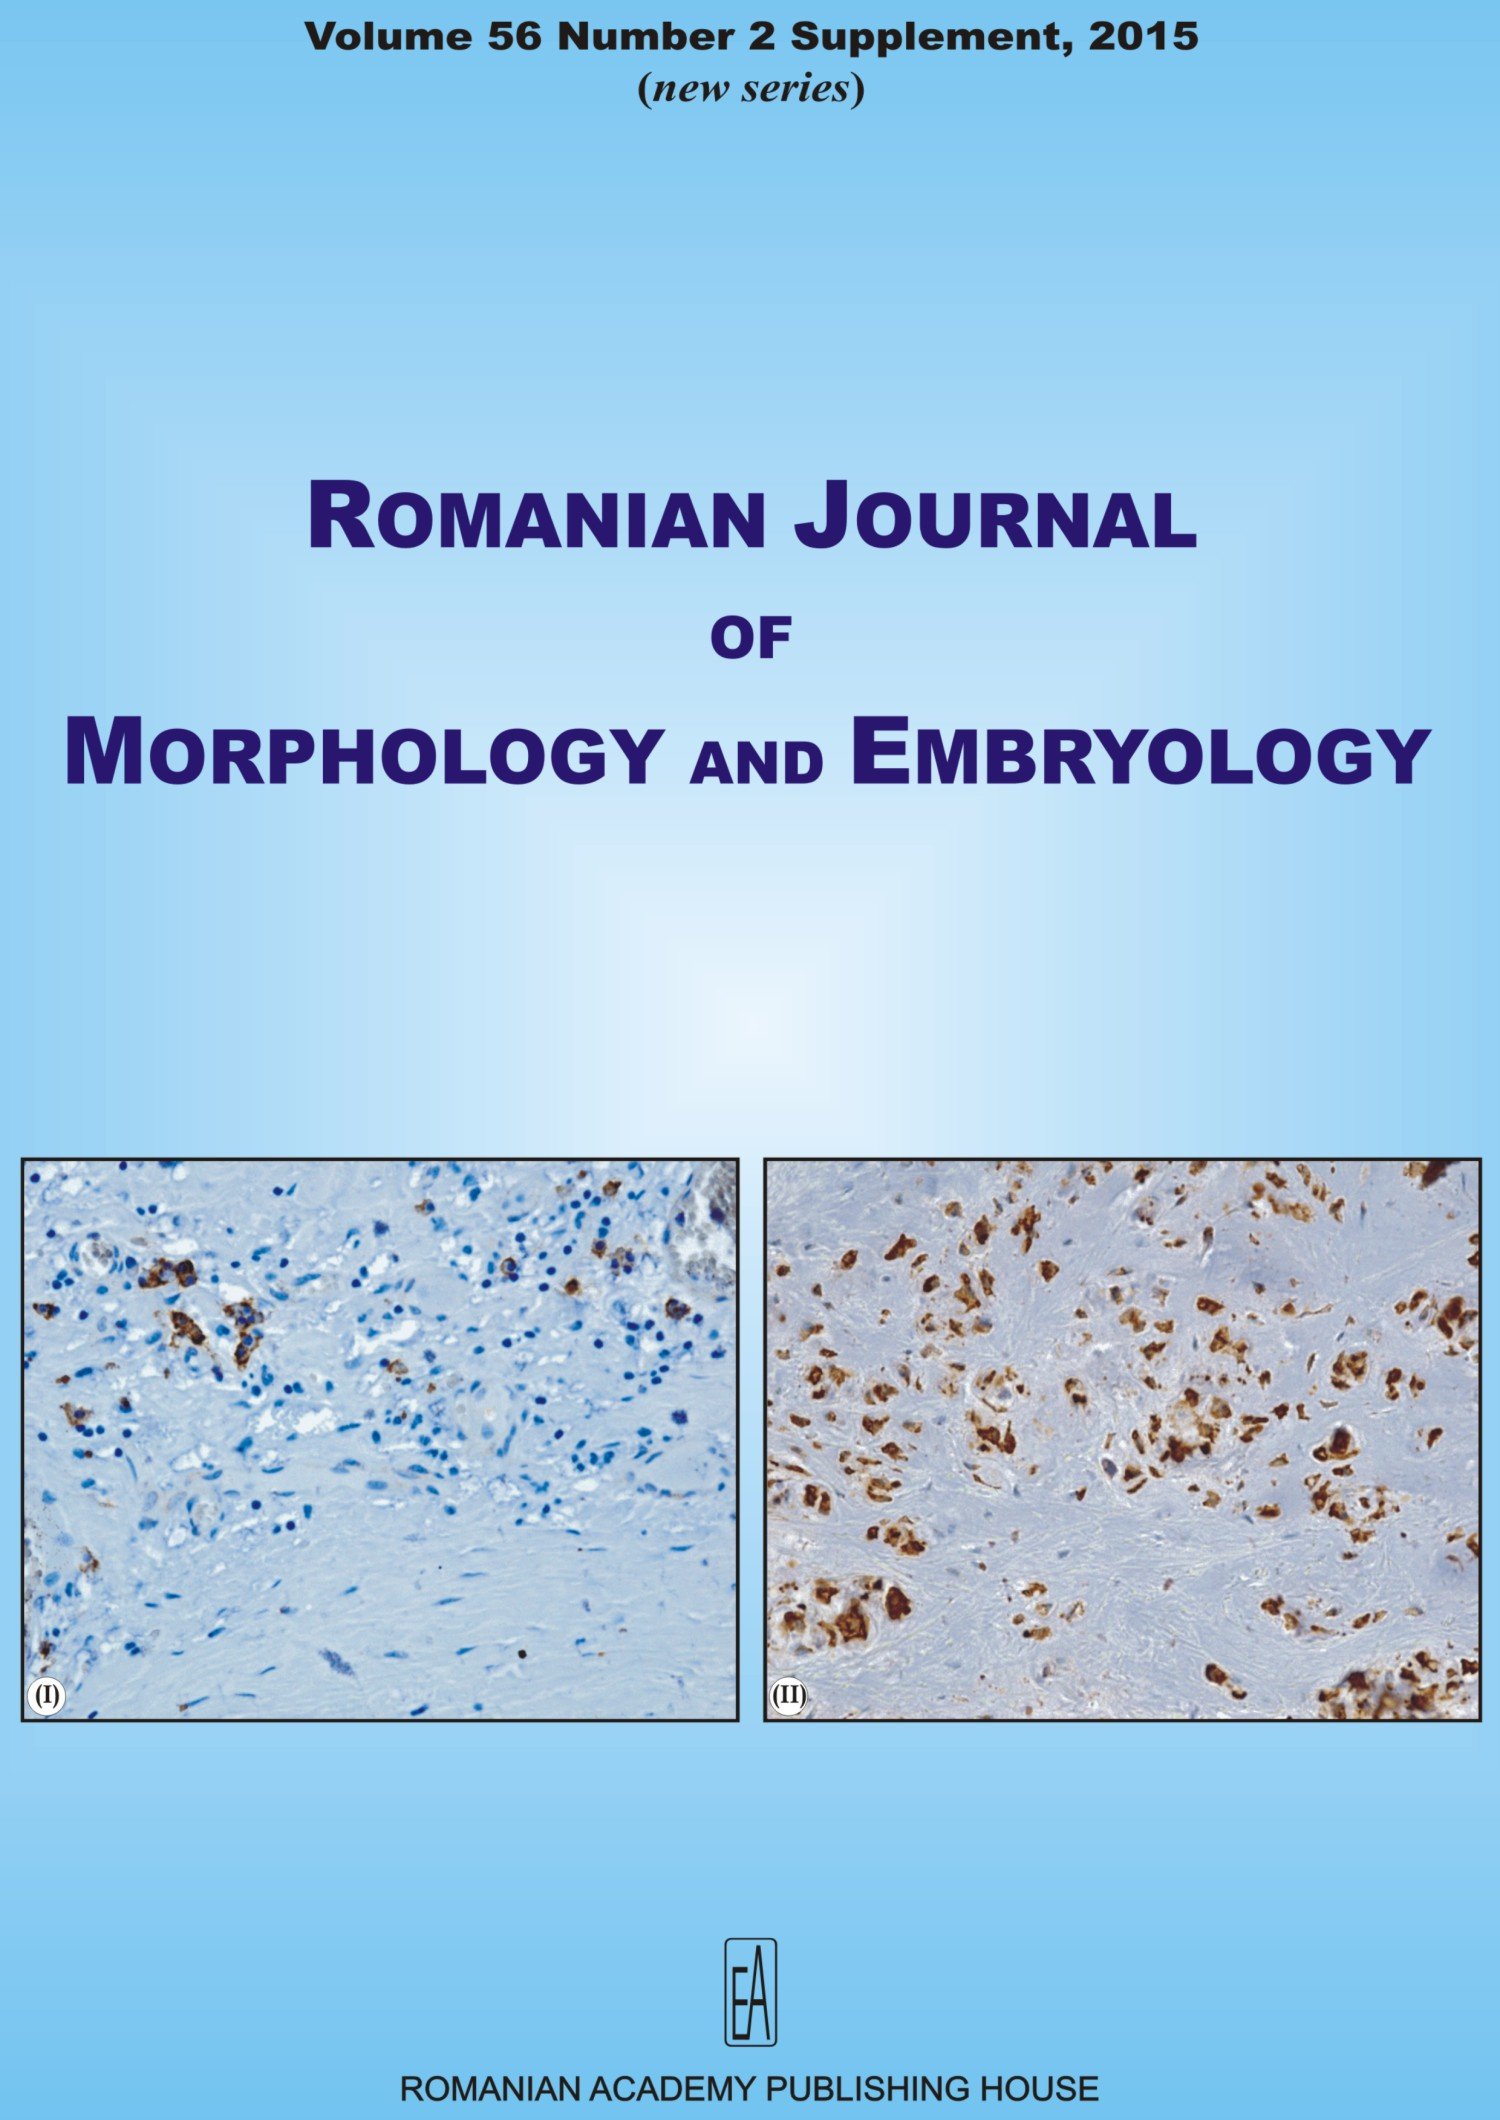 Romanian Journal of Morphology and Embryology, vol. 56 no. 2Suppl, 2015